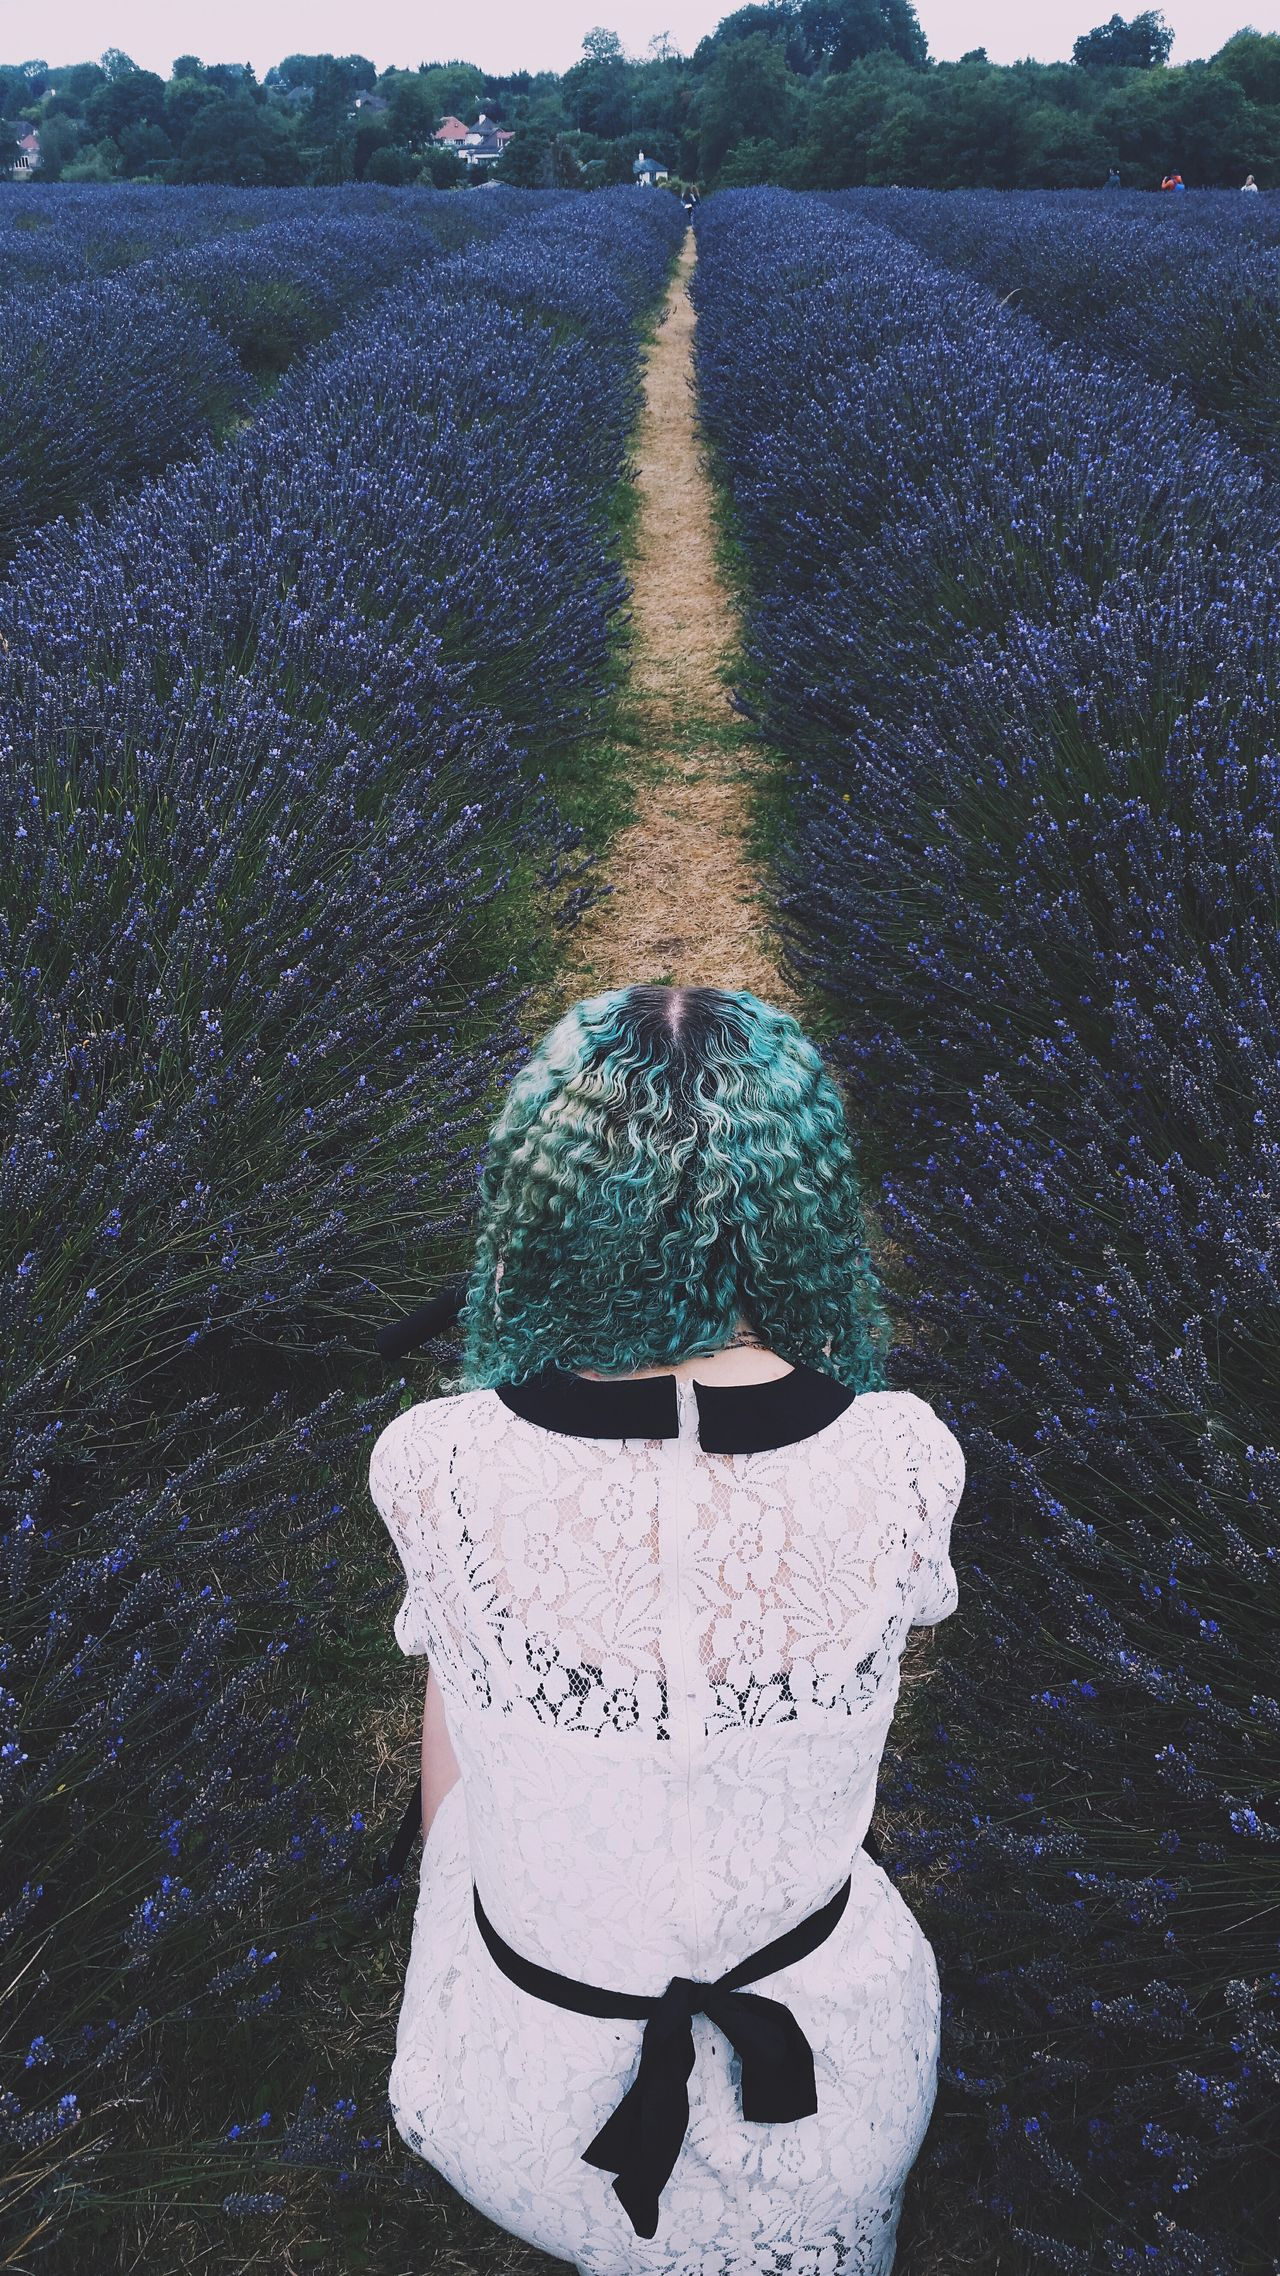 Lavender fields. Lavender United Kingdom England VSCO Lavenderfarm Summer Greenhair Lace Flowers Model